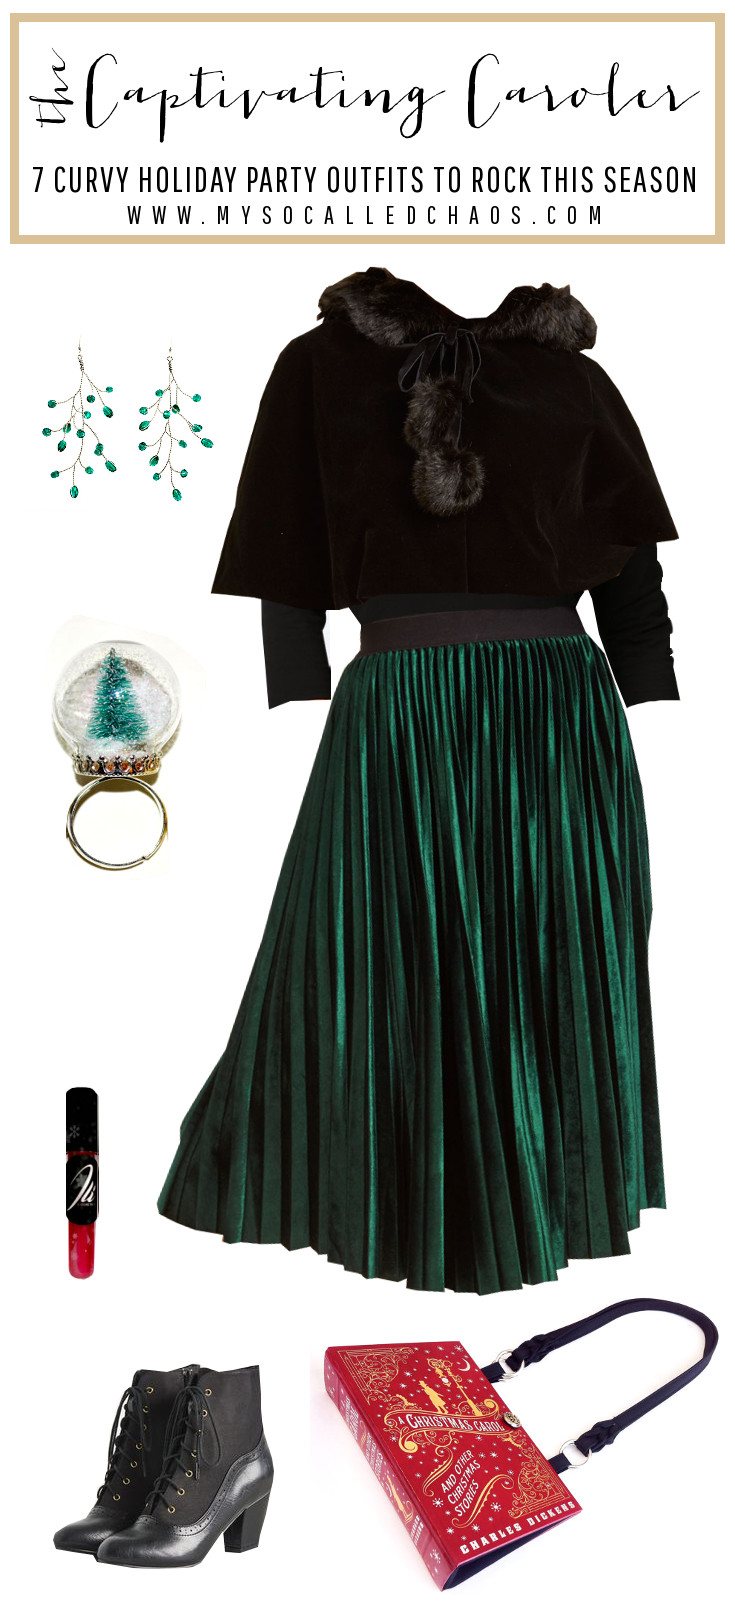 7 Curvy Holiday Party Outfits to Rock This Season: The Captivating Caroler